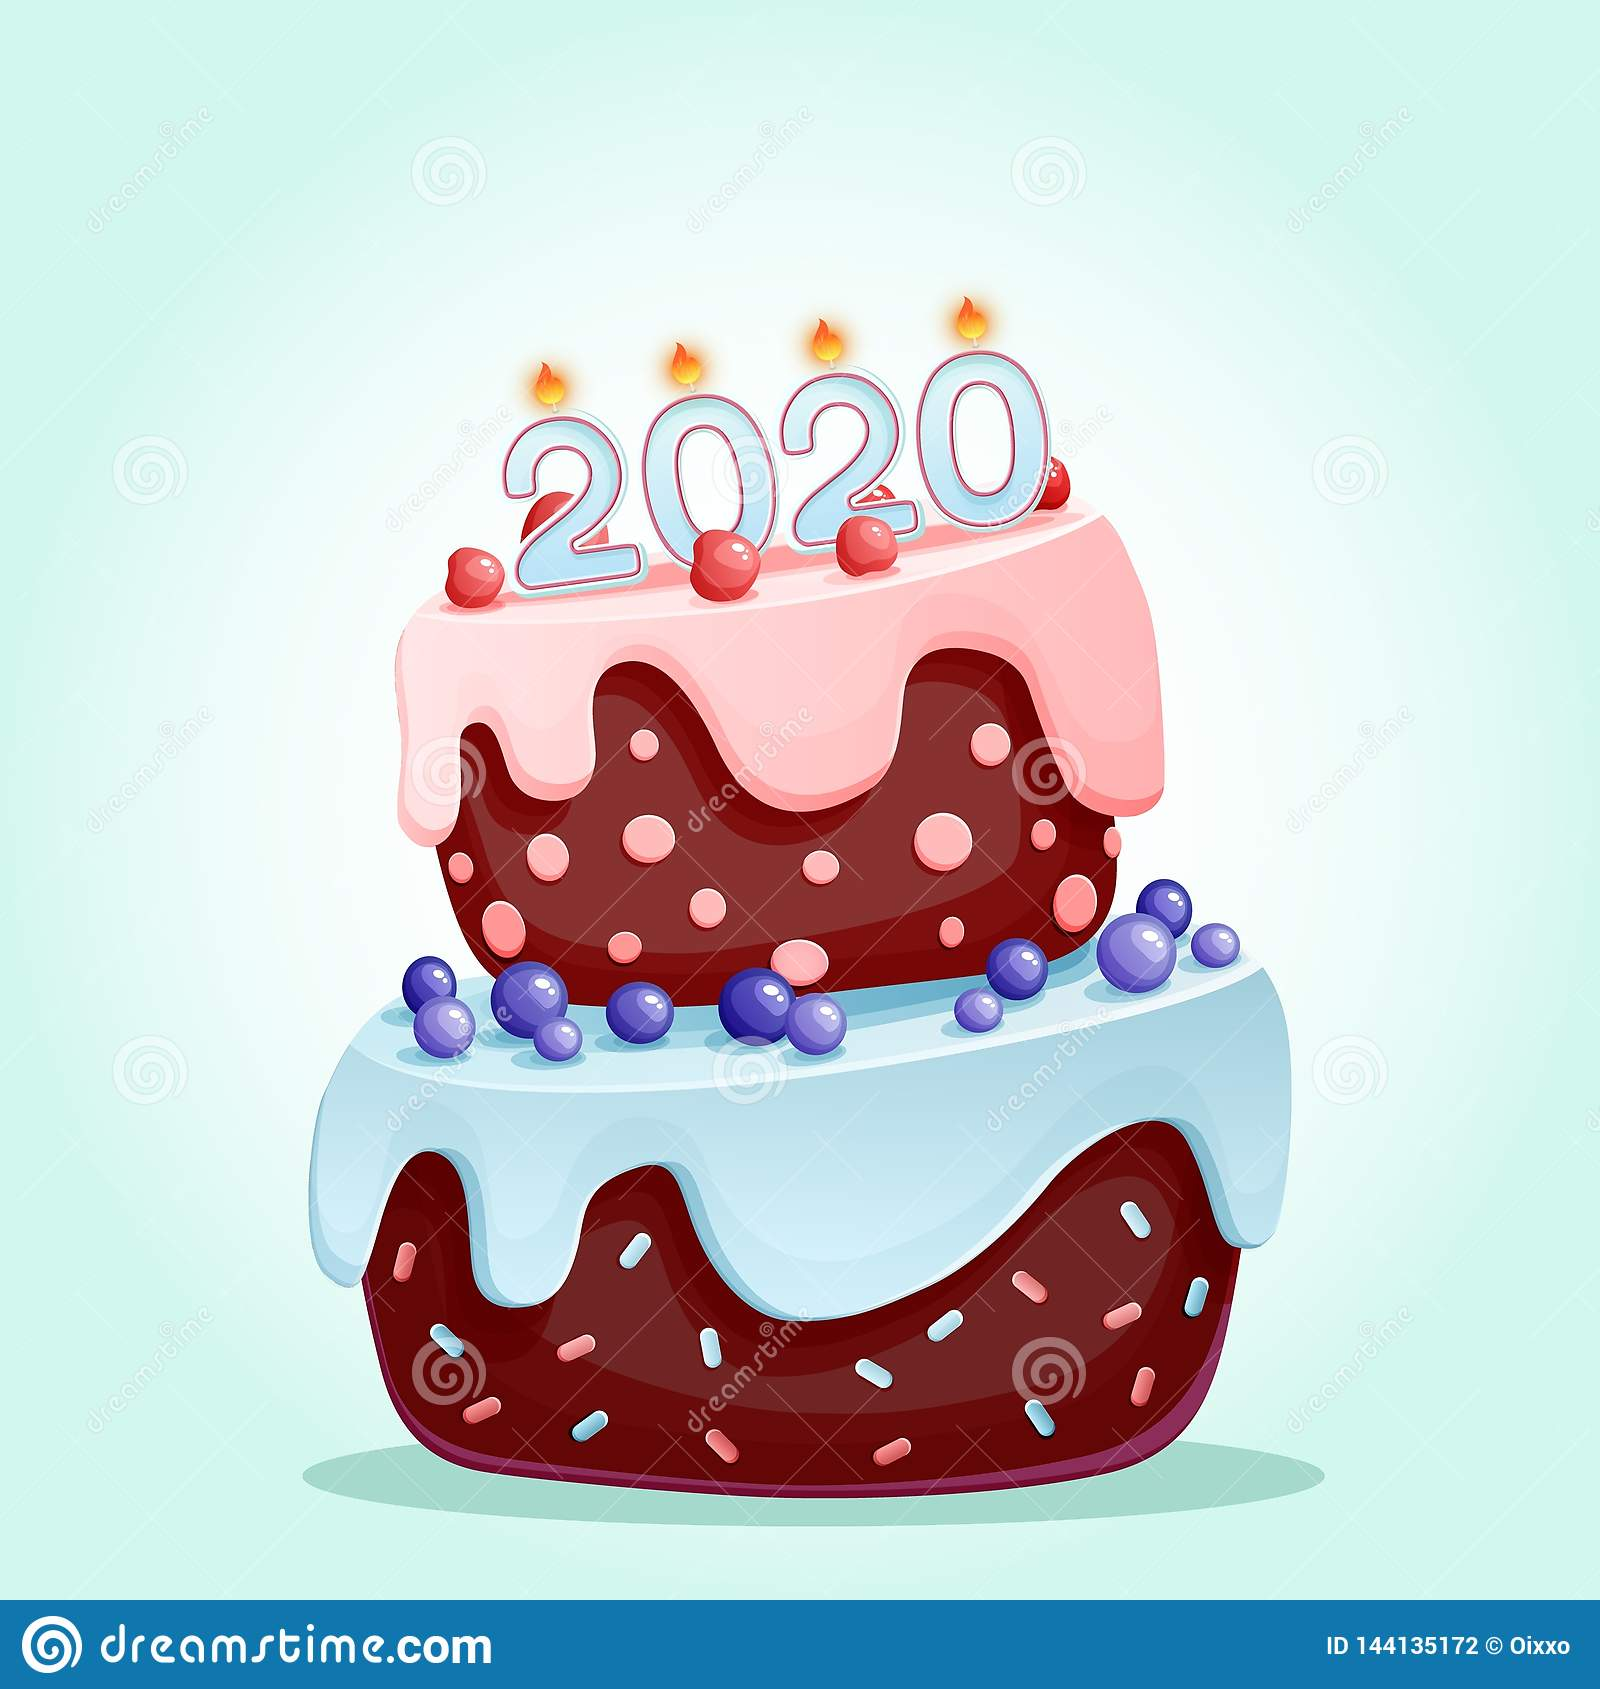 2020 candles on a festive cake. Happy New Year 2020 vector illustration isolated. Merry Christmas and happy New Year vector design